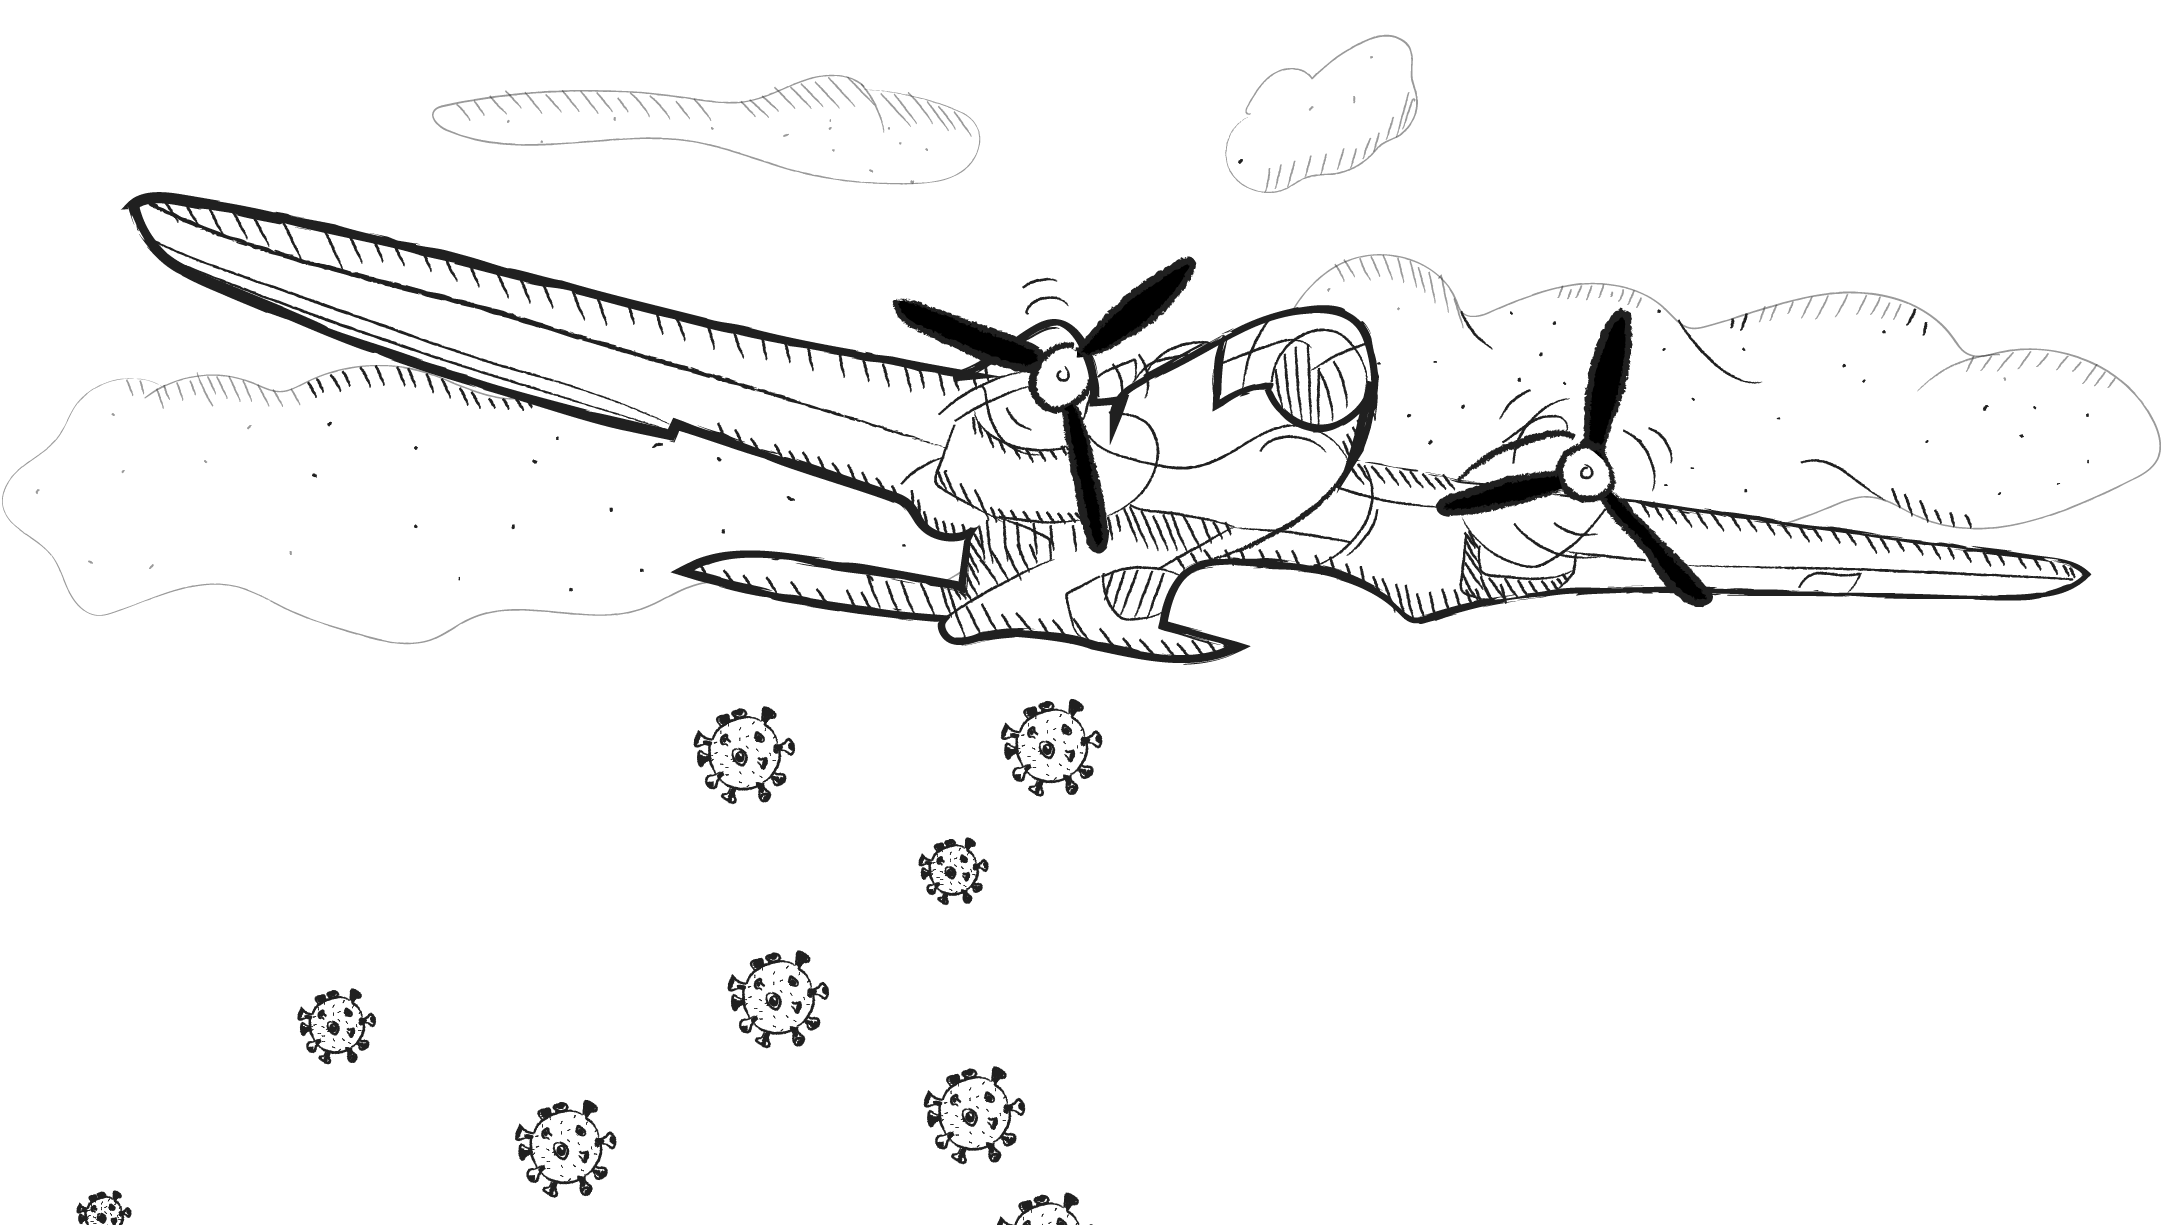 "An illustration of a vintage-style plane with propellers flying through the clouds, with large coronavirus cells being ""dropped"" from the plane."